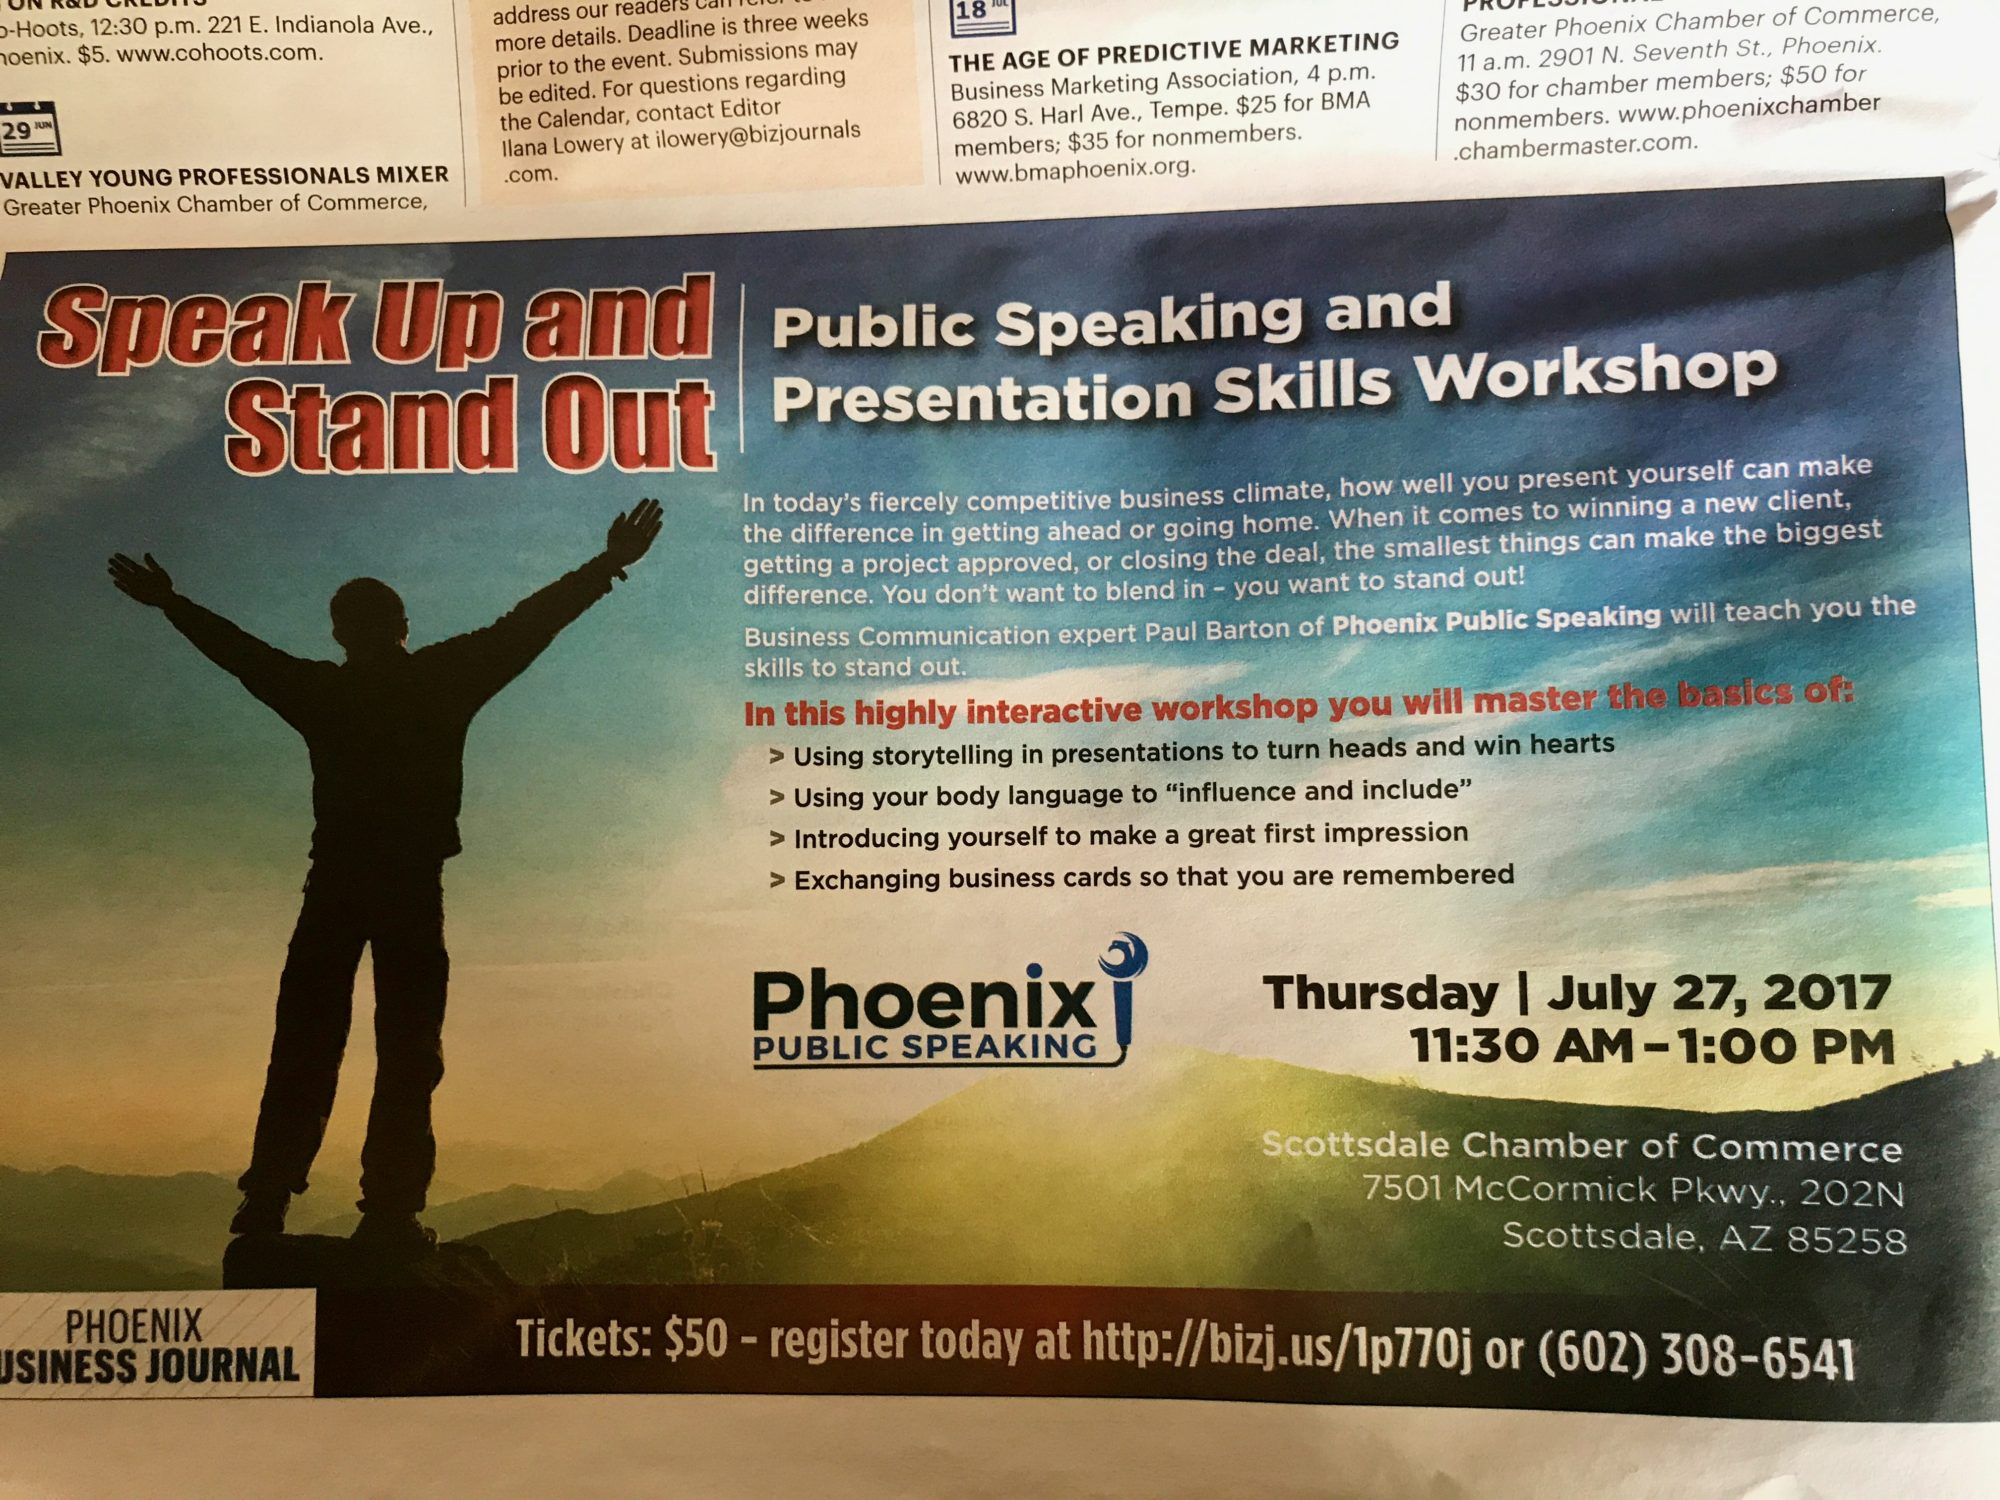 phoenix public speaking workshop